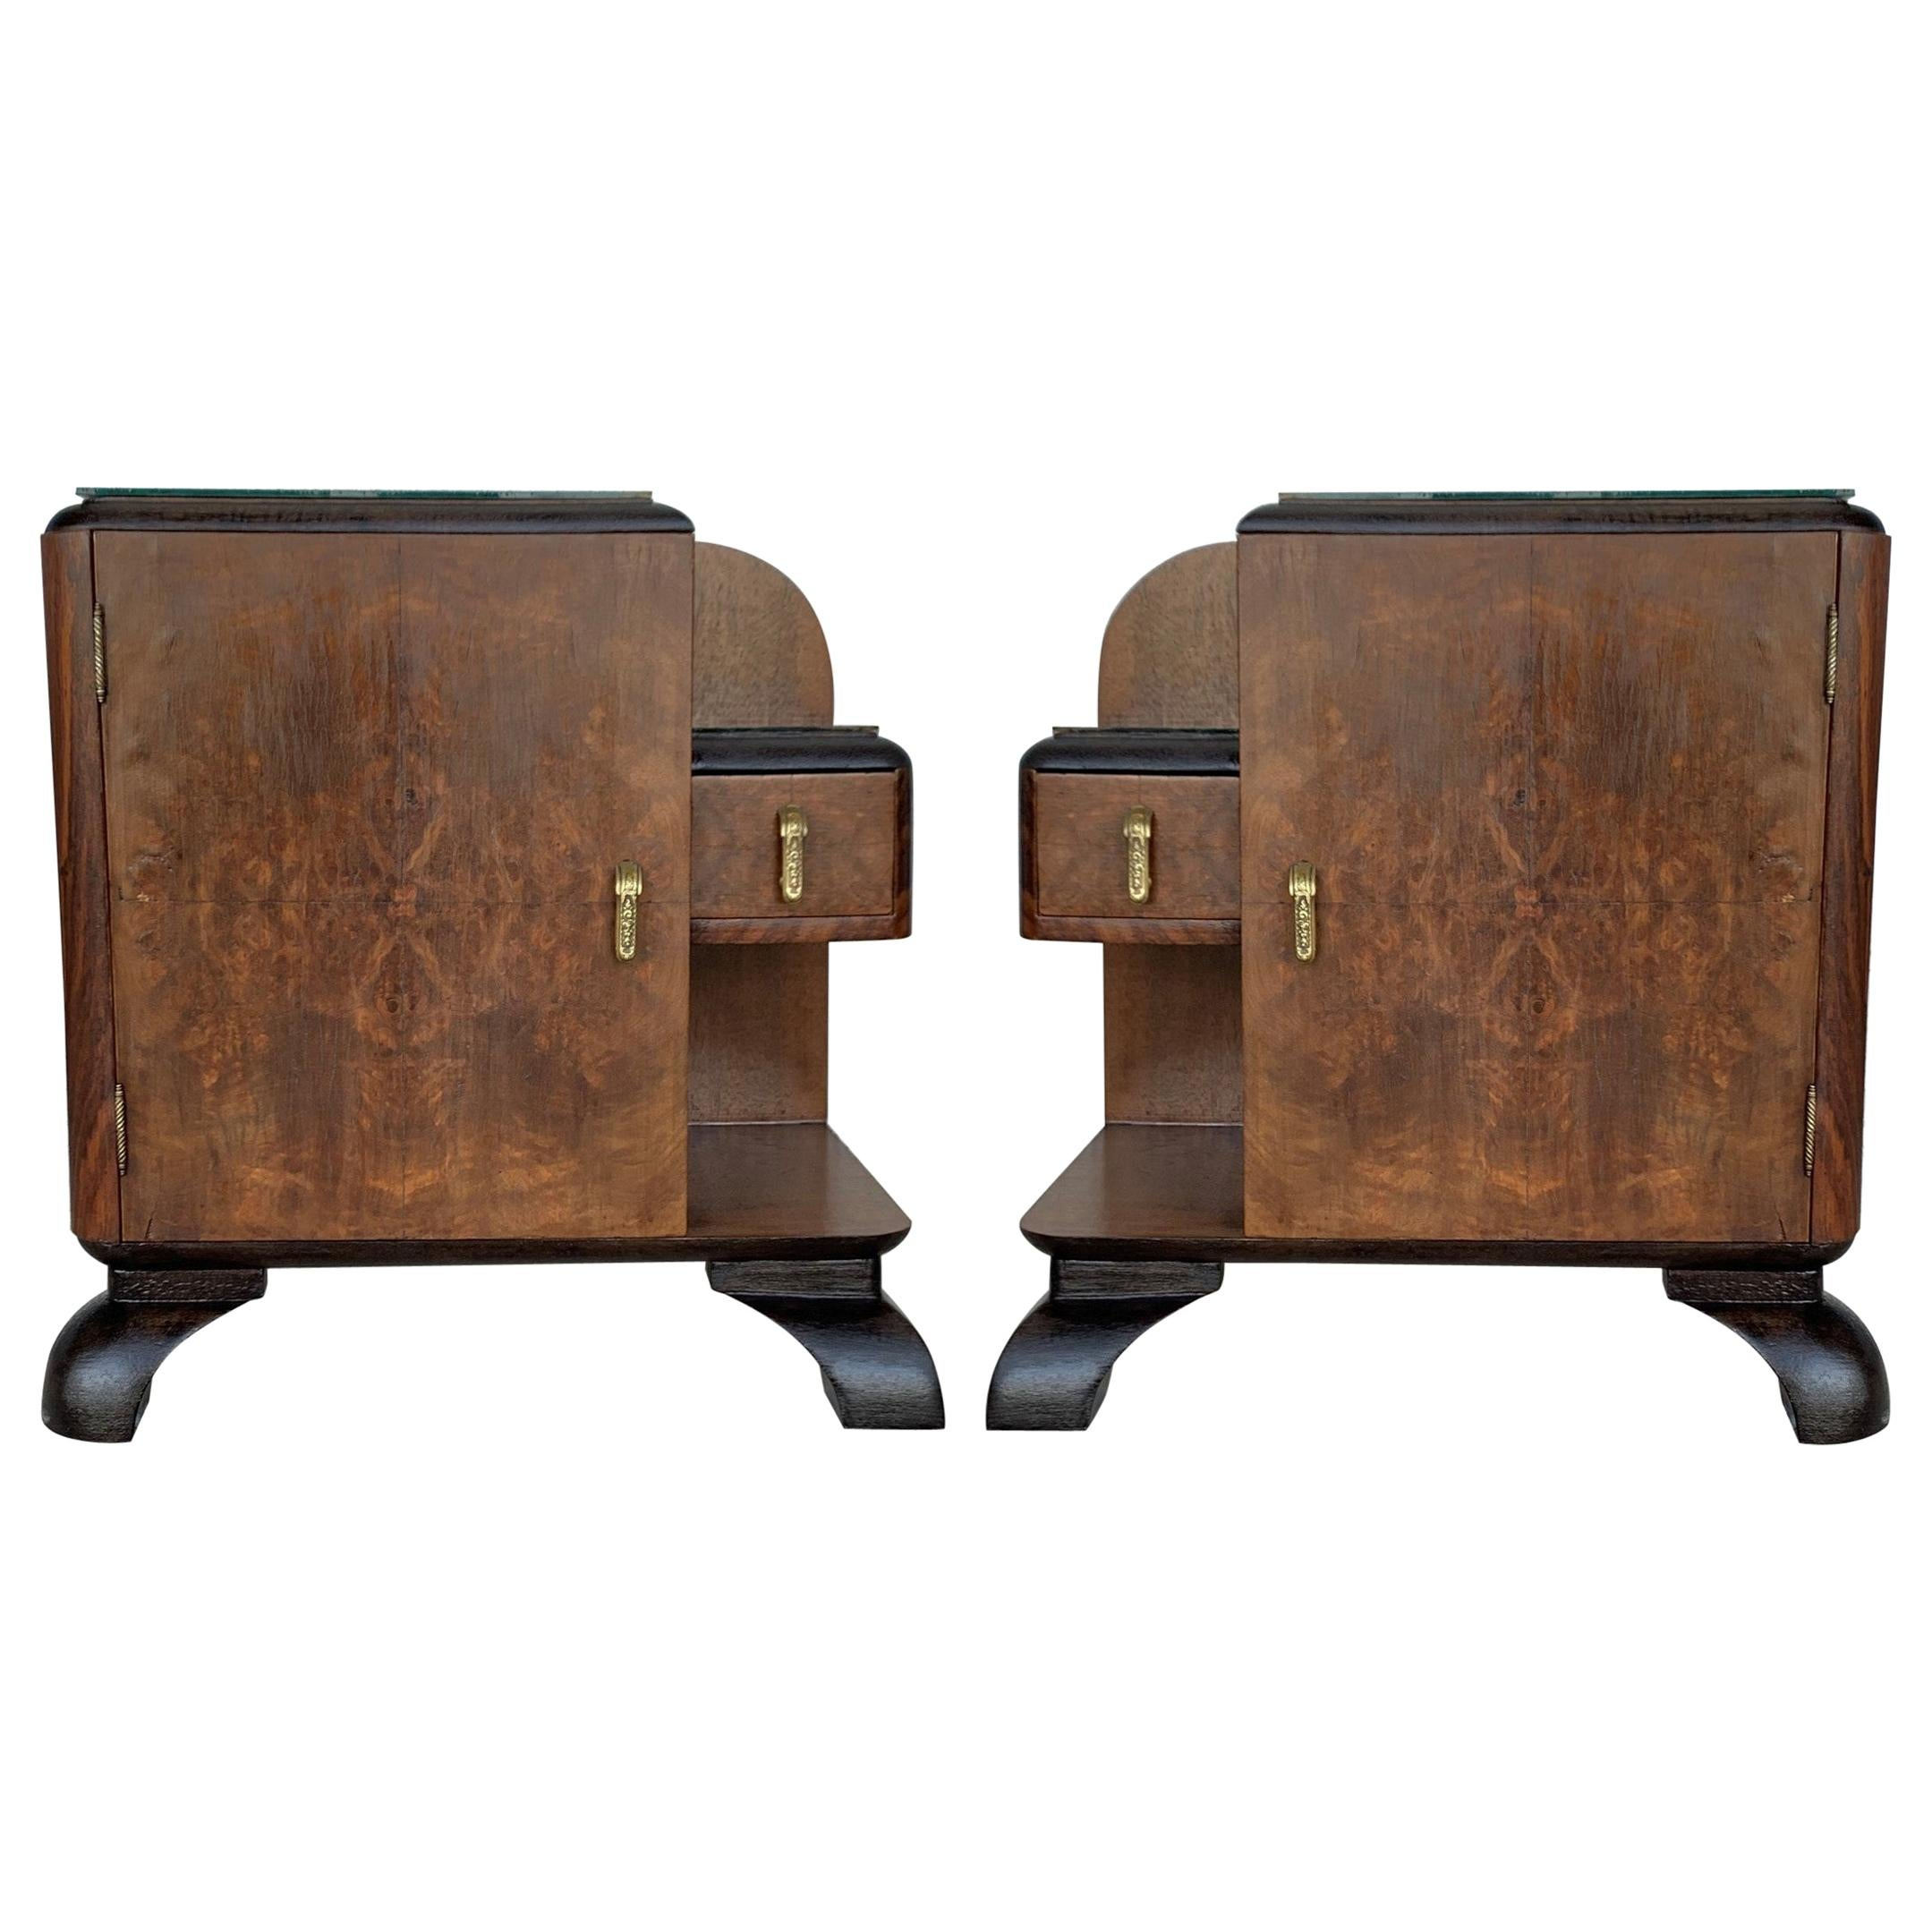 Pair of Midcentury Front Nightstands with Original Hardware and Ebonized Base